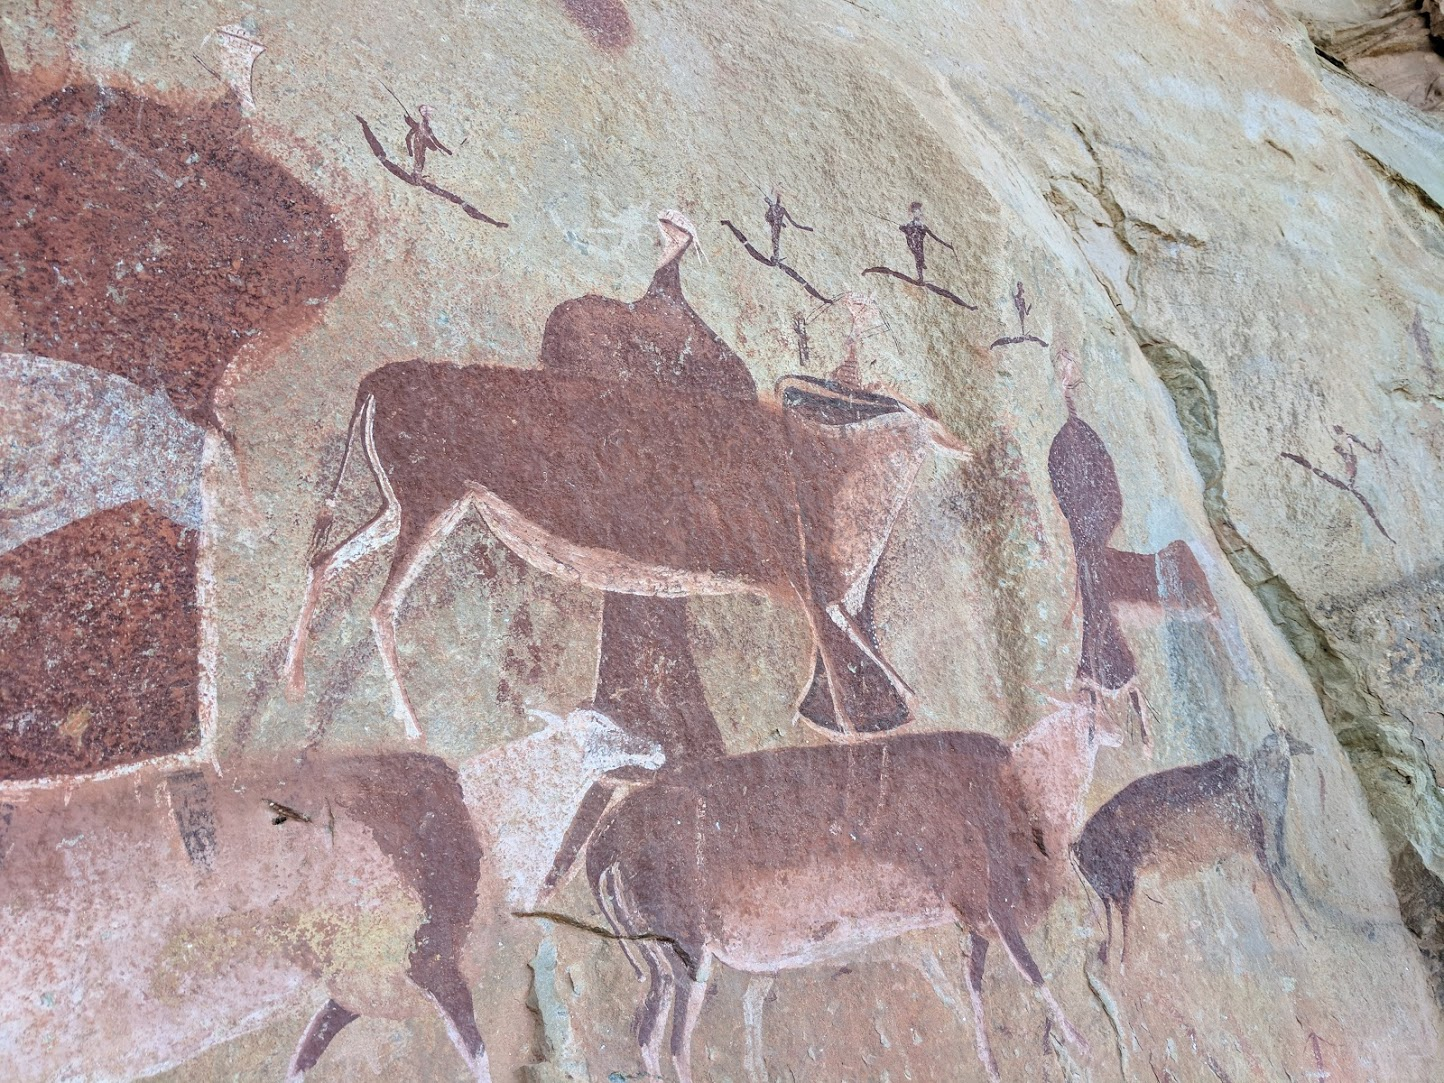 Bushman Cave Paintings from Trip